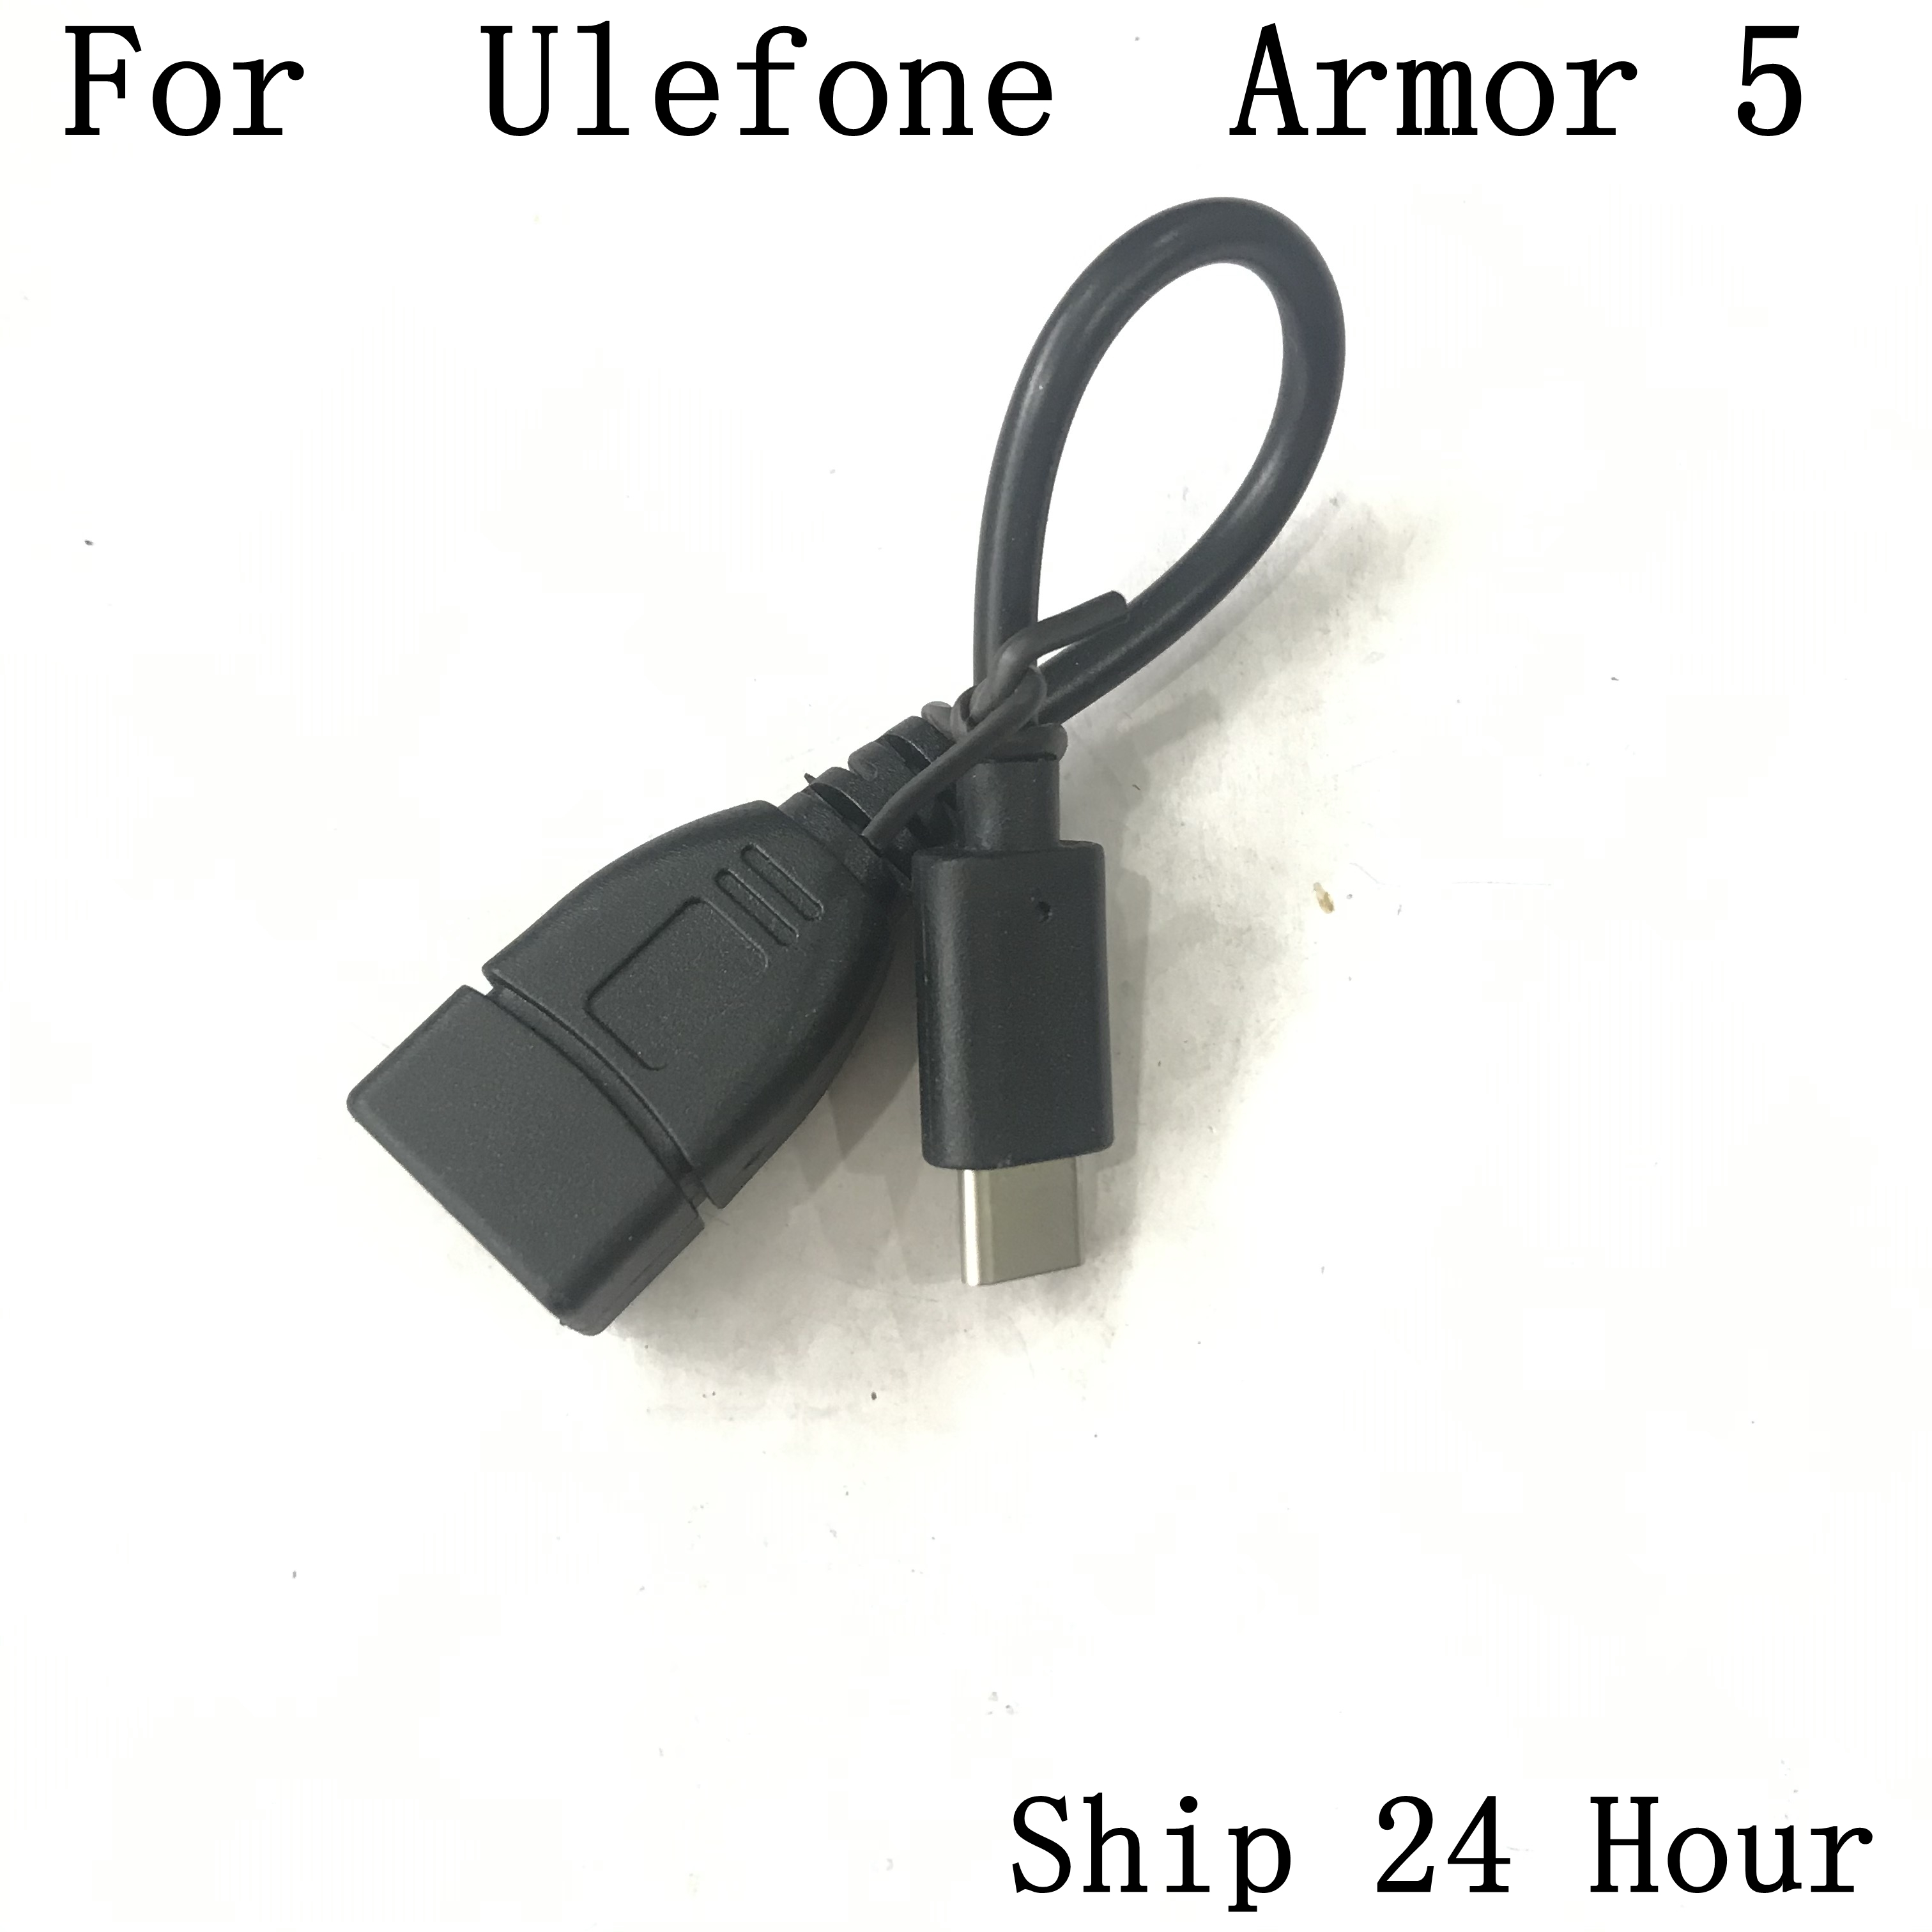 Ulefone Armor 5 New OTG Cable OTG Line For Ulefone Armor 5 Repair Fixing Part Replacement